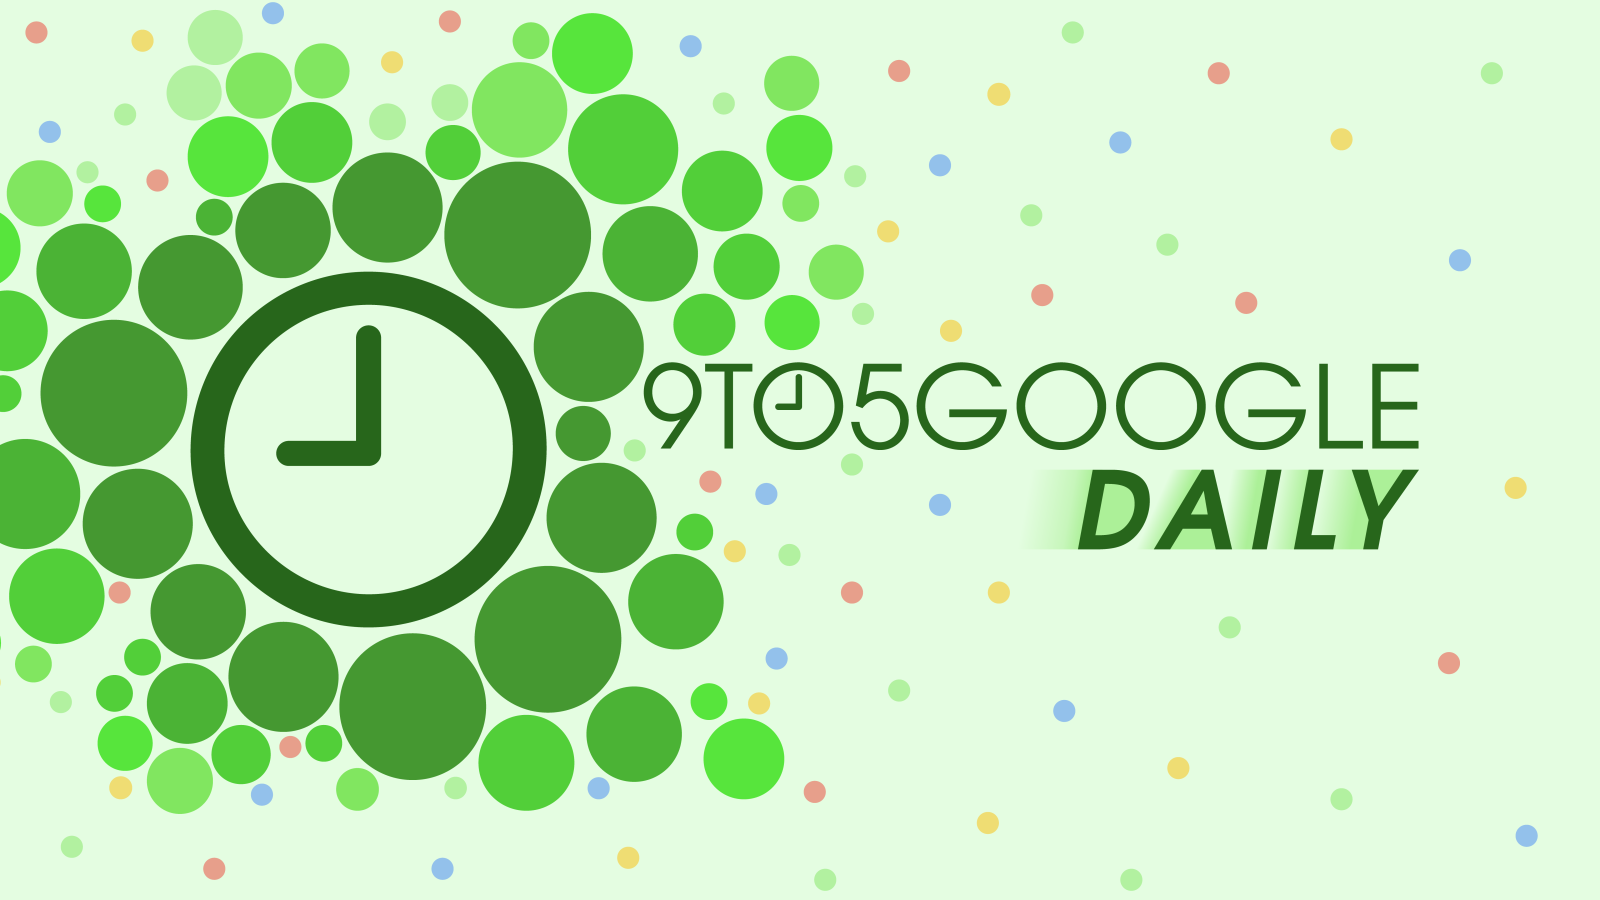 9to5Google Daily 213: Like Facebook, Google's internal apps get shut down by Apple